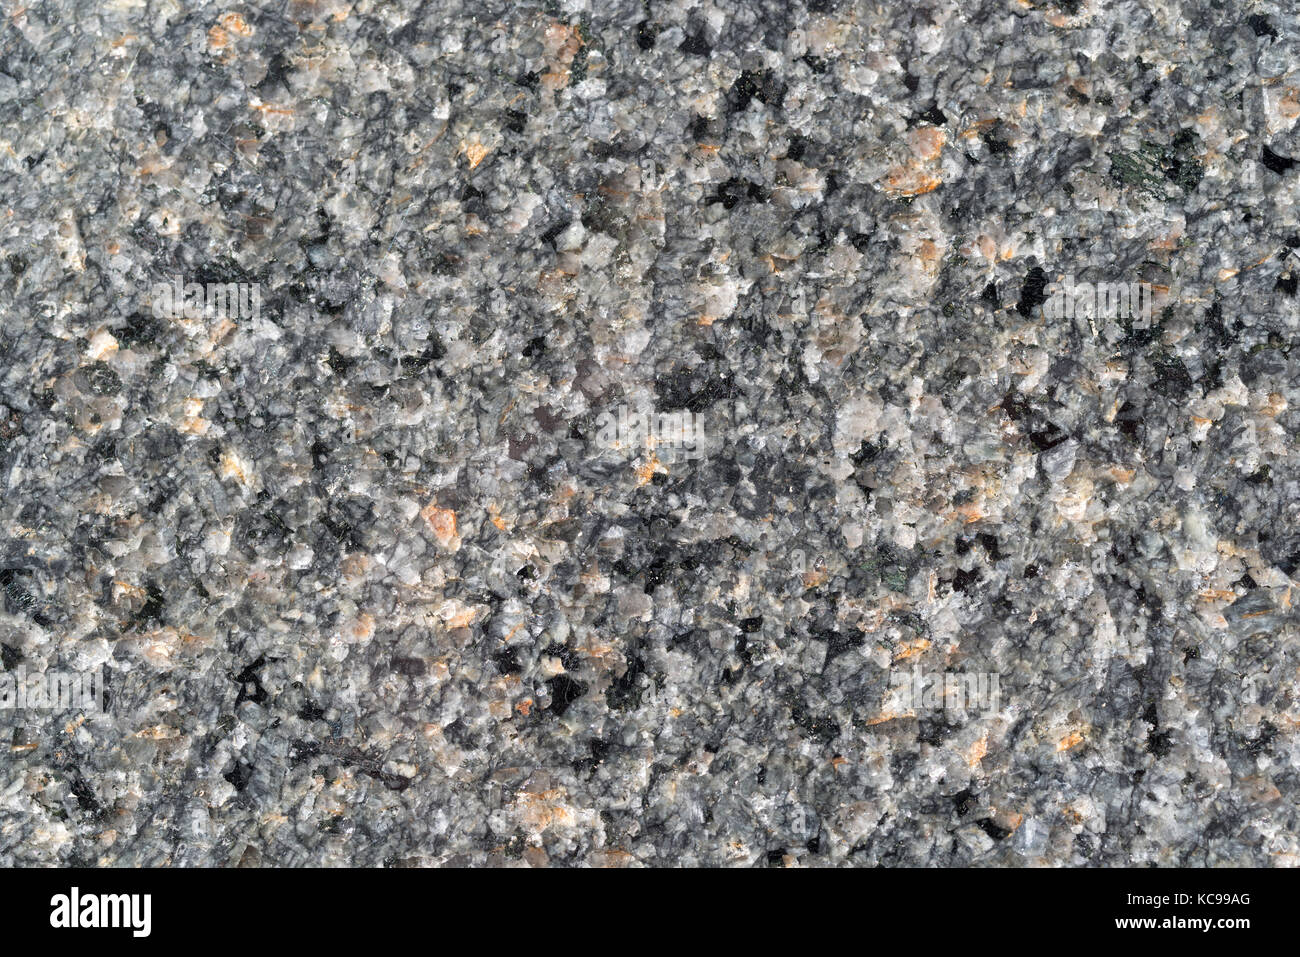 A polished stone floor tile with reds whites blacks and grays a polished stone floor tile with reds whites blacks and grays dailygadgetfo Gallery